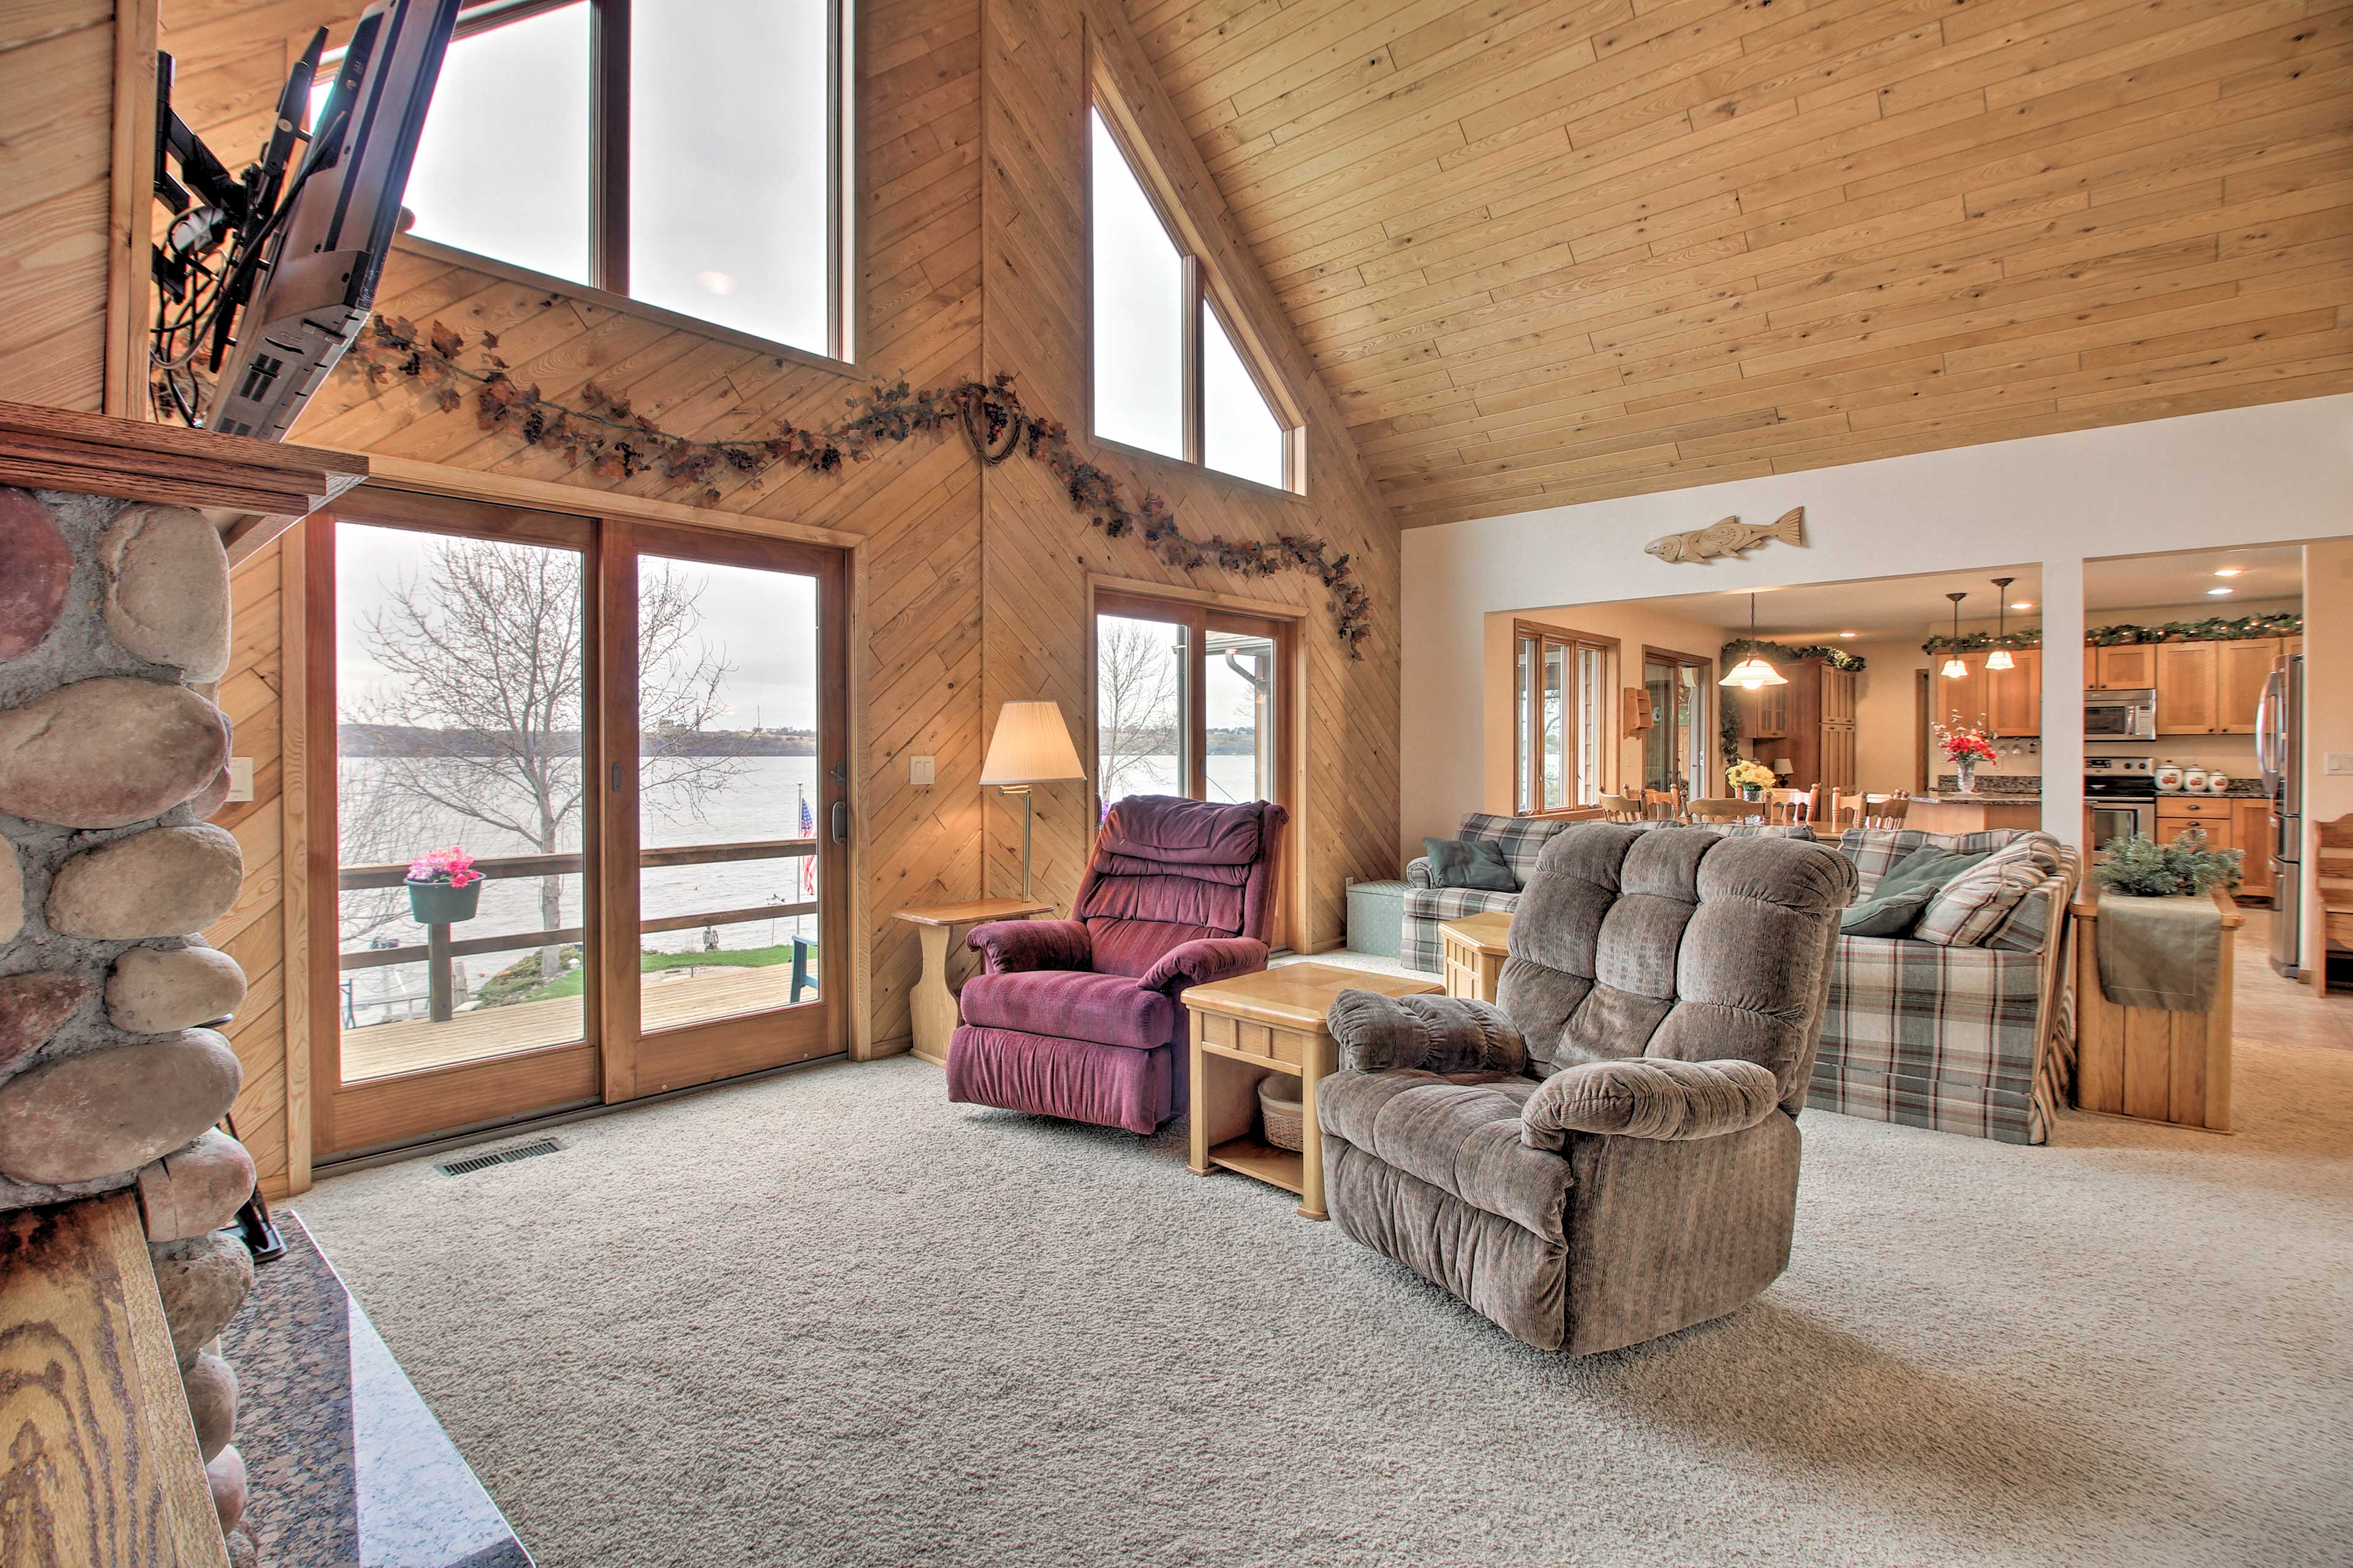 Vaulted ceilings expand the living area.